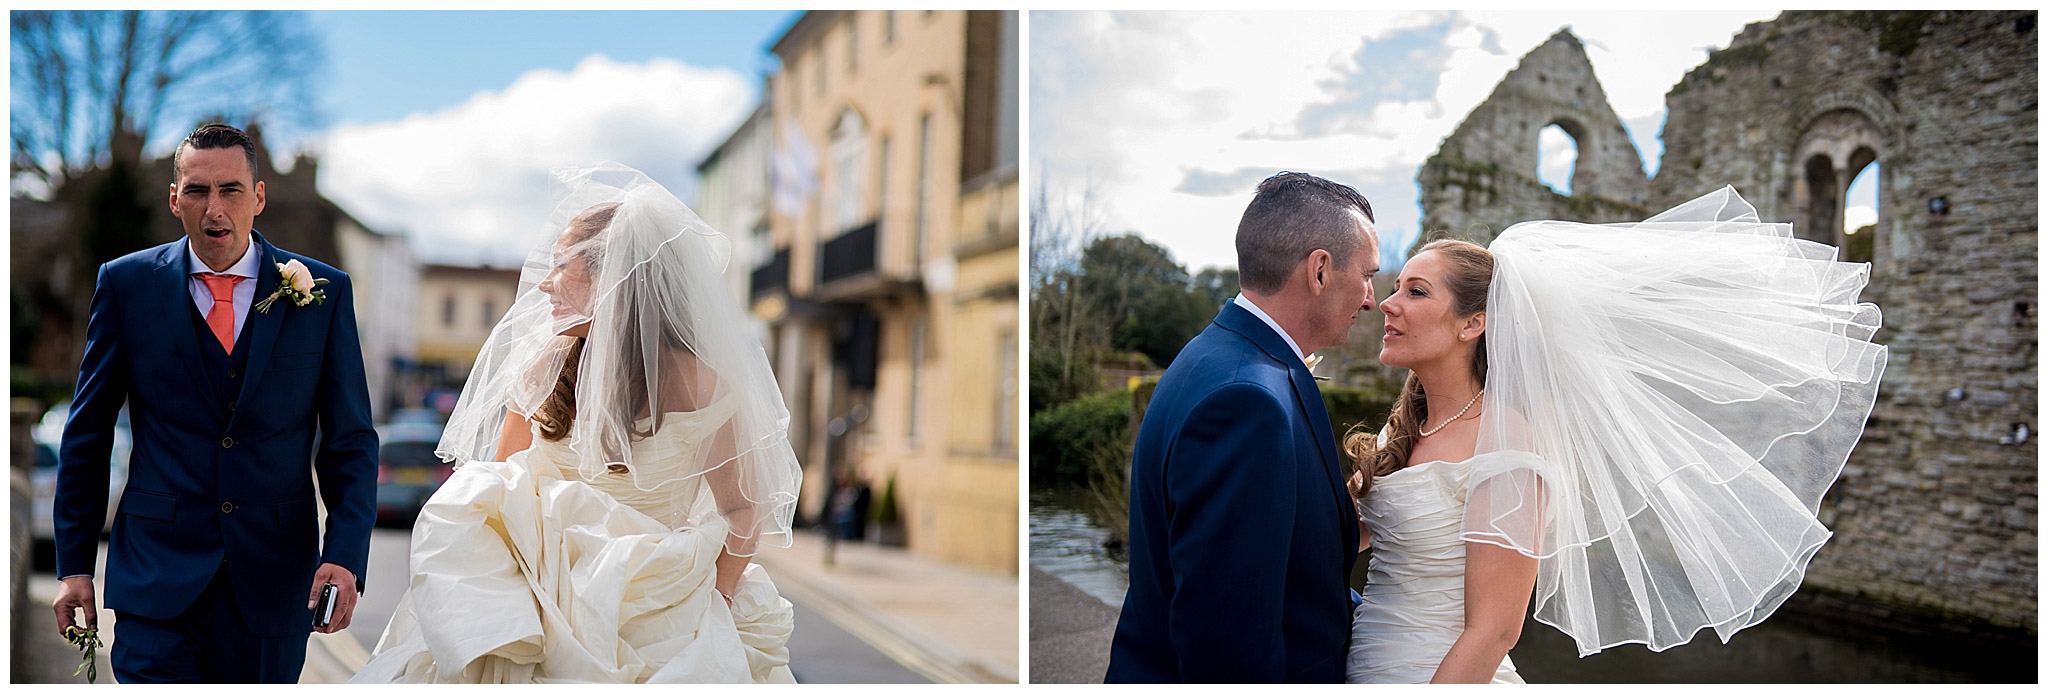 Katie-&-Steve-Victoria-Park-Methodist-Chruch-Winton-&-The-Manor-Burton-Christchurch-Wedding-31